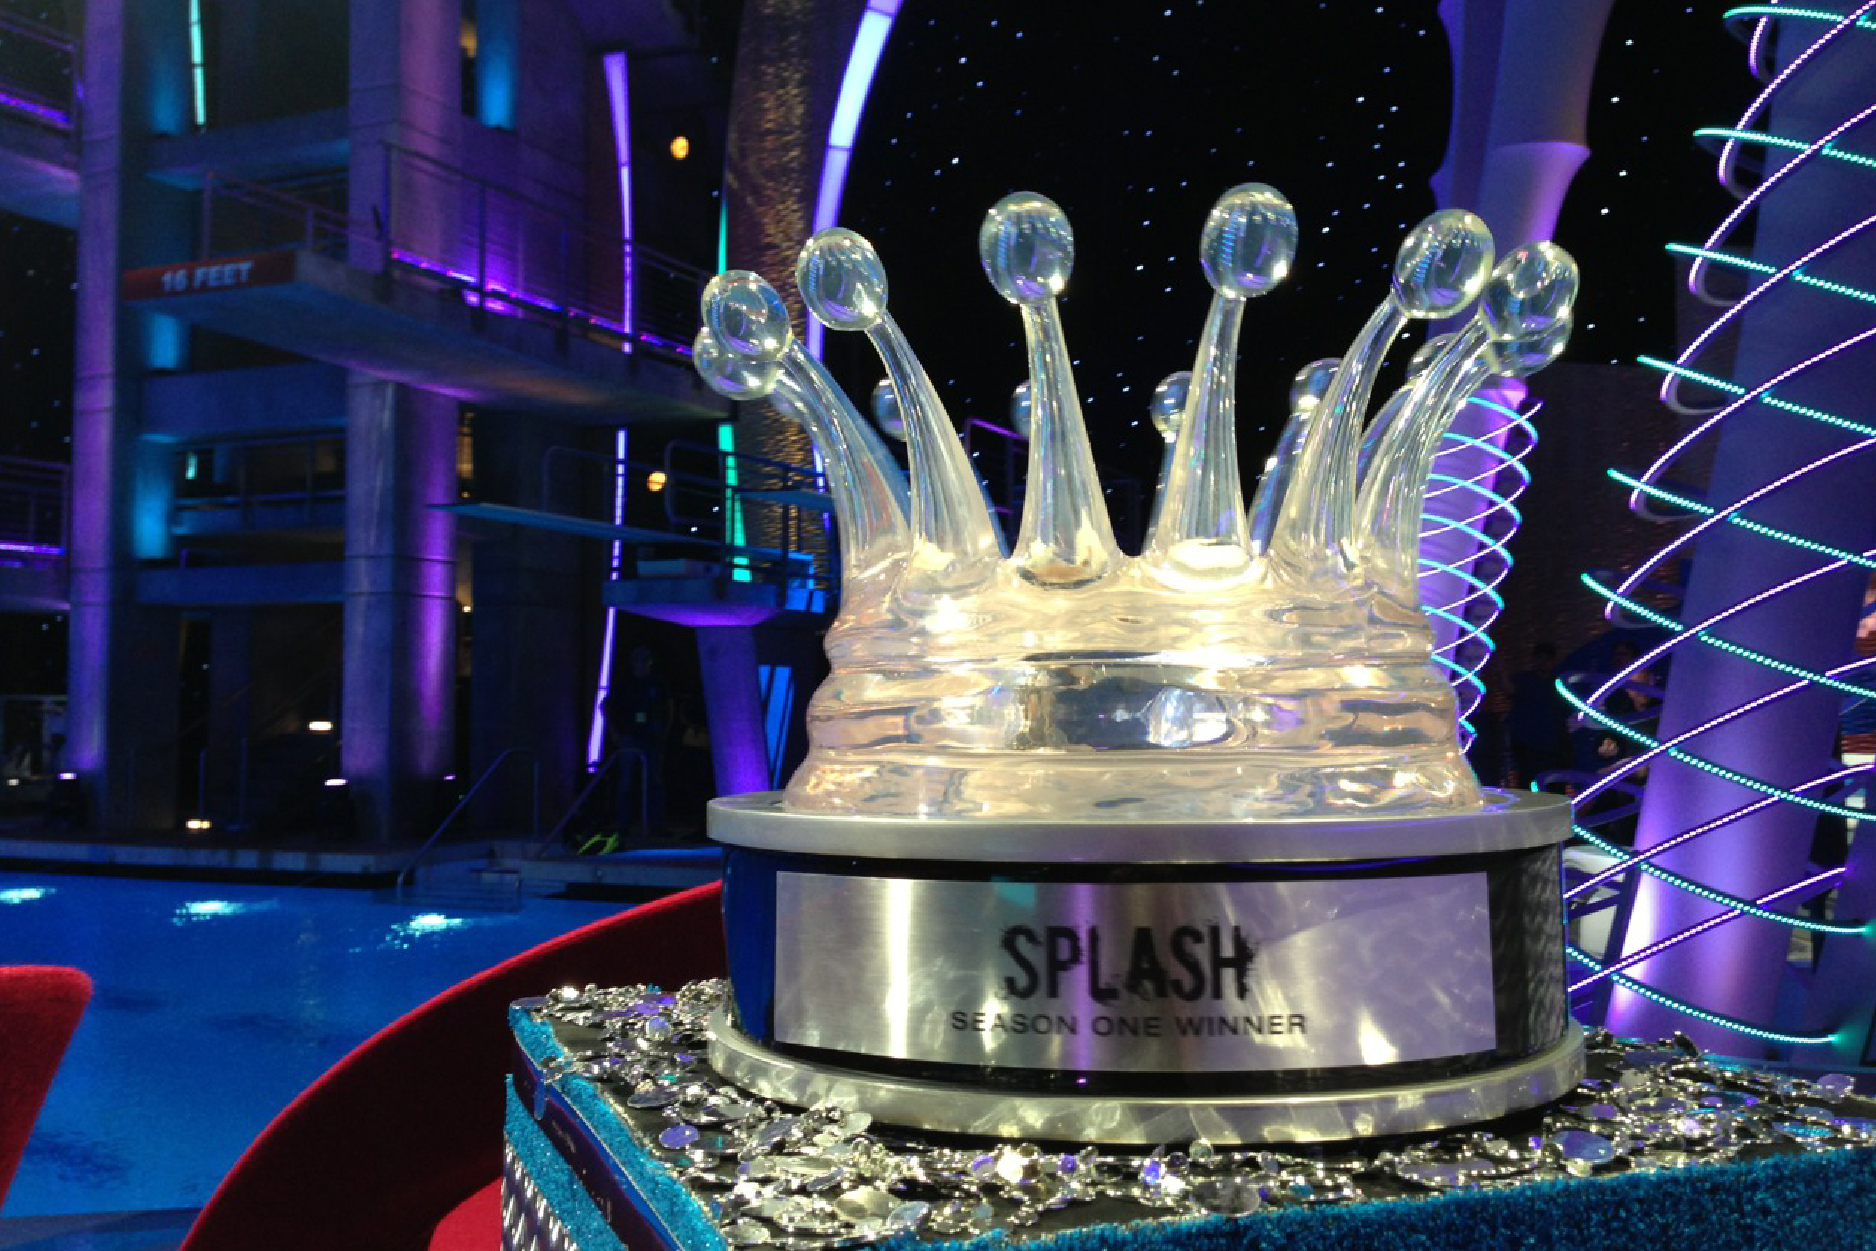 giant custom TV award cast clear splash sculpture